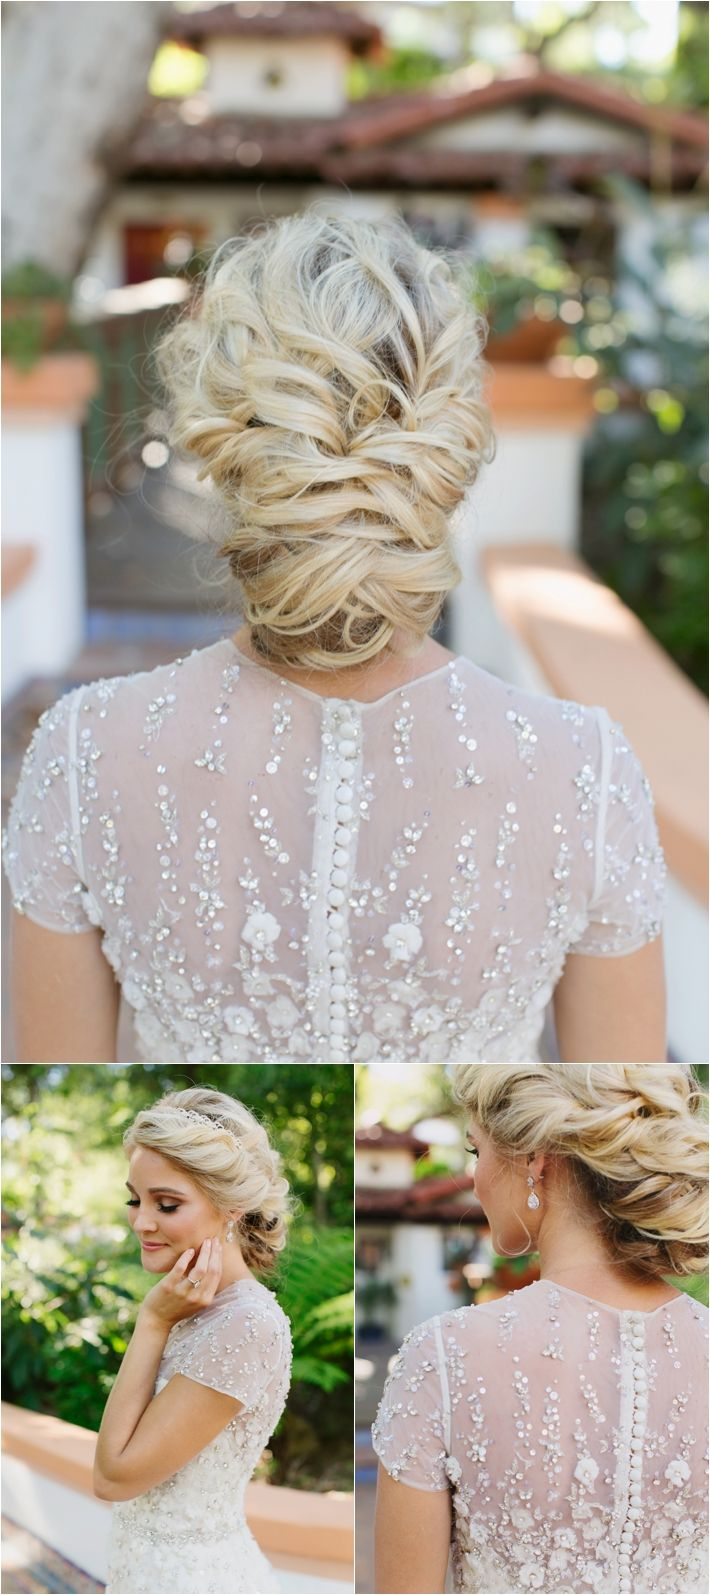 Latest Wedding Bridal Braided Hairstyles 2018- Step by Step Tutorials